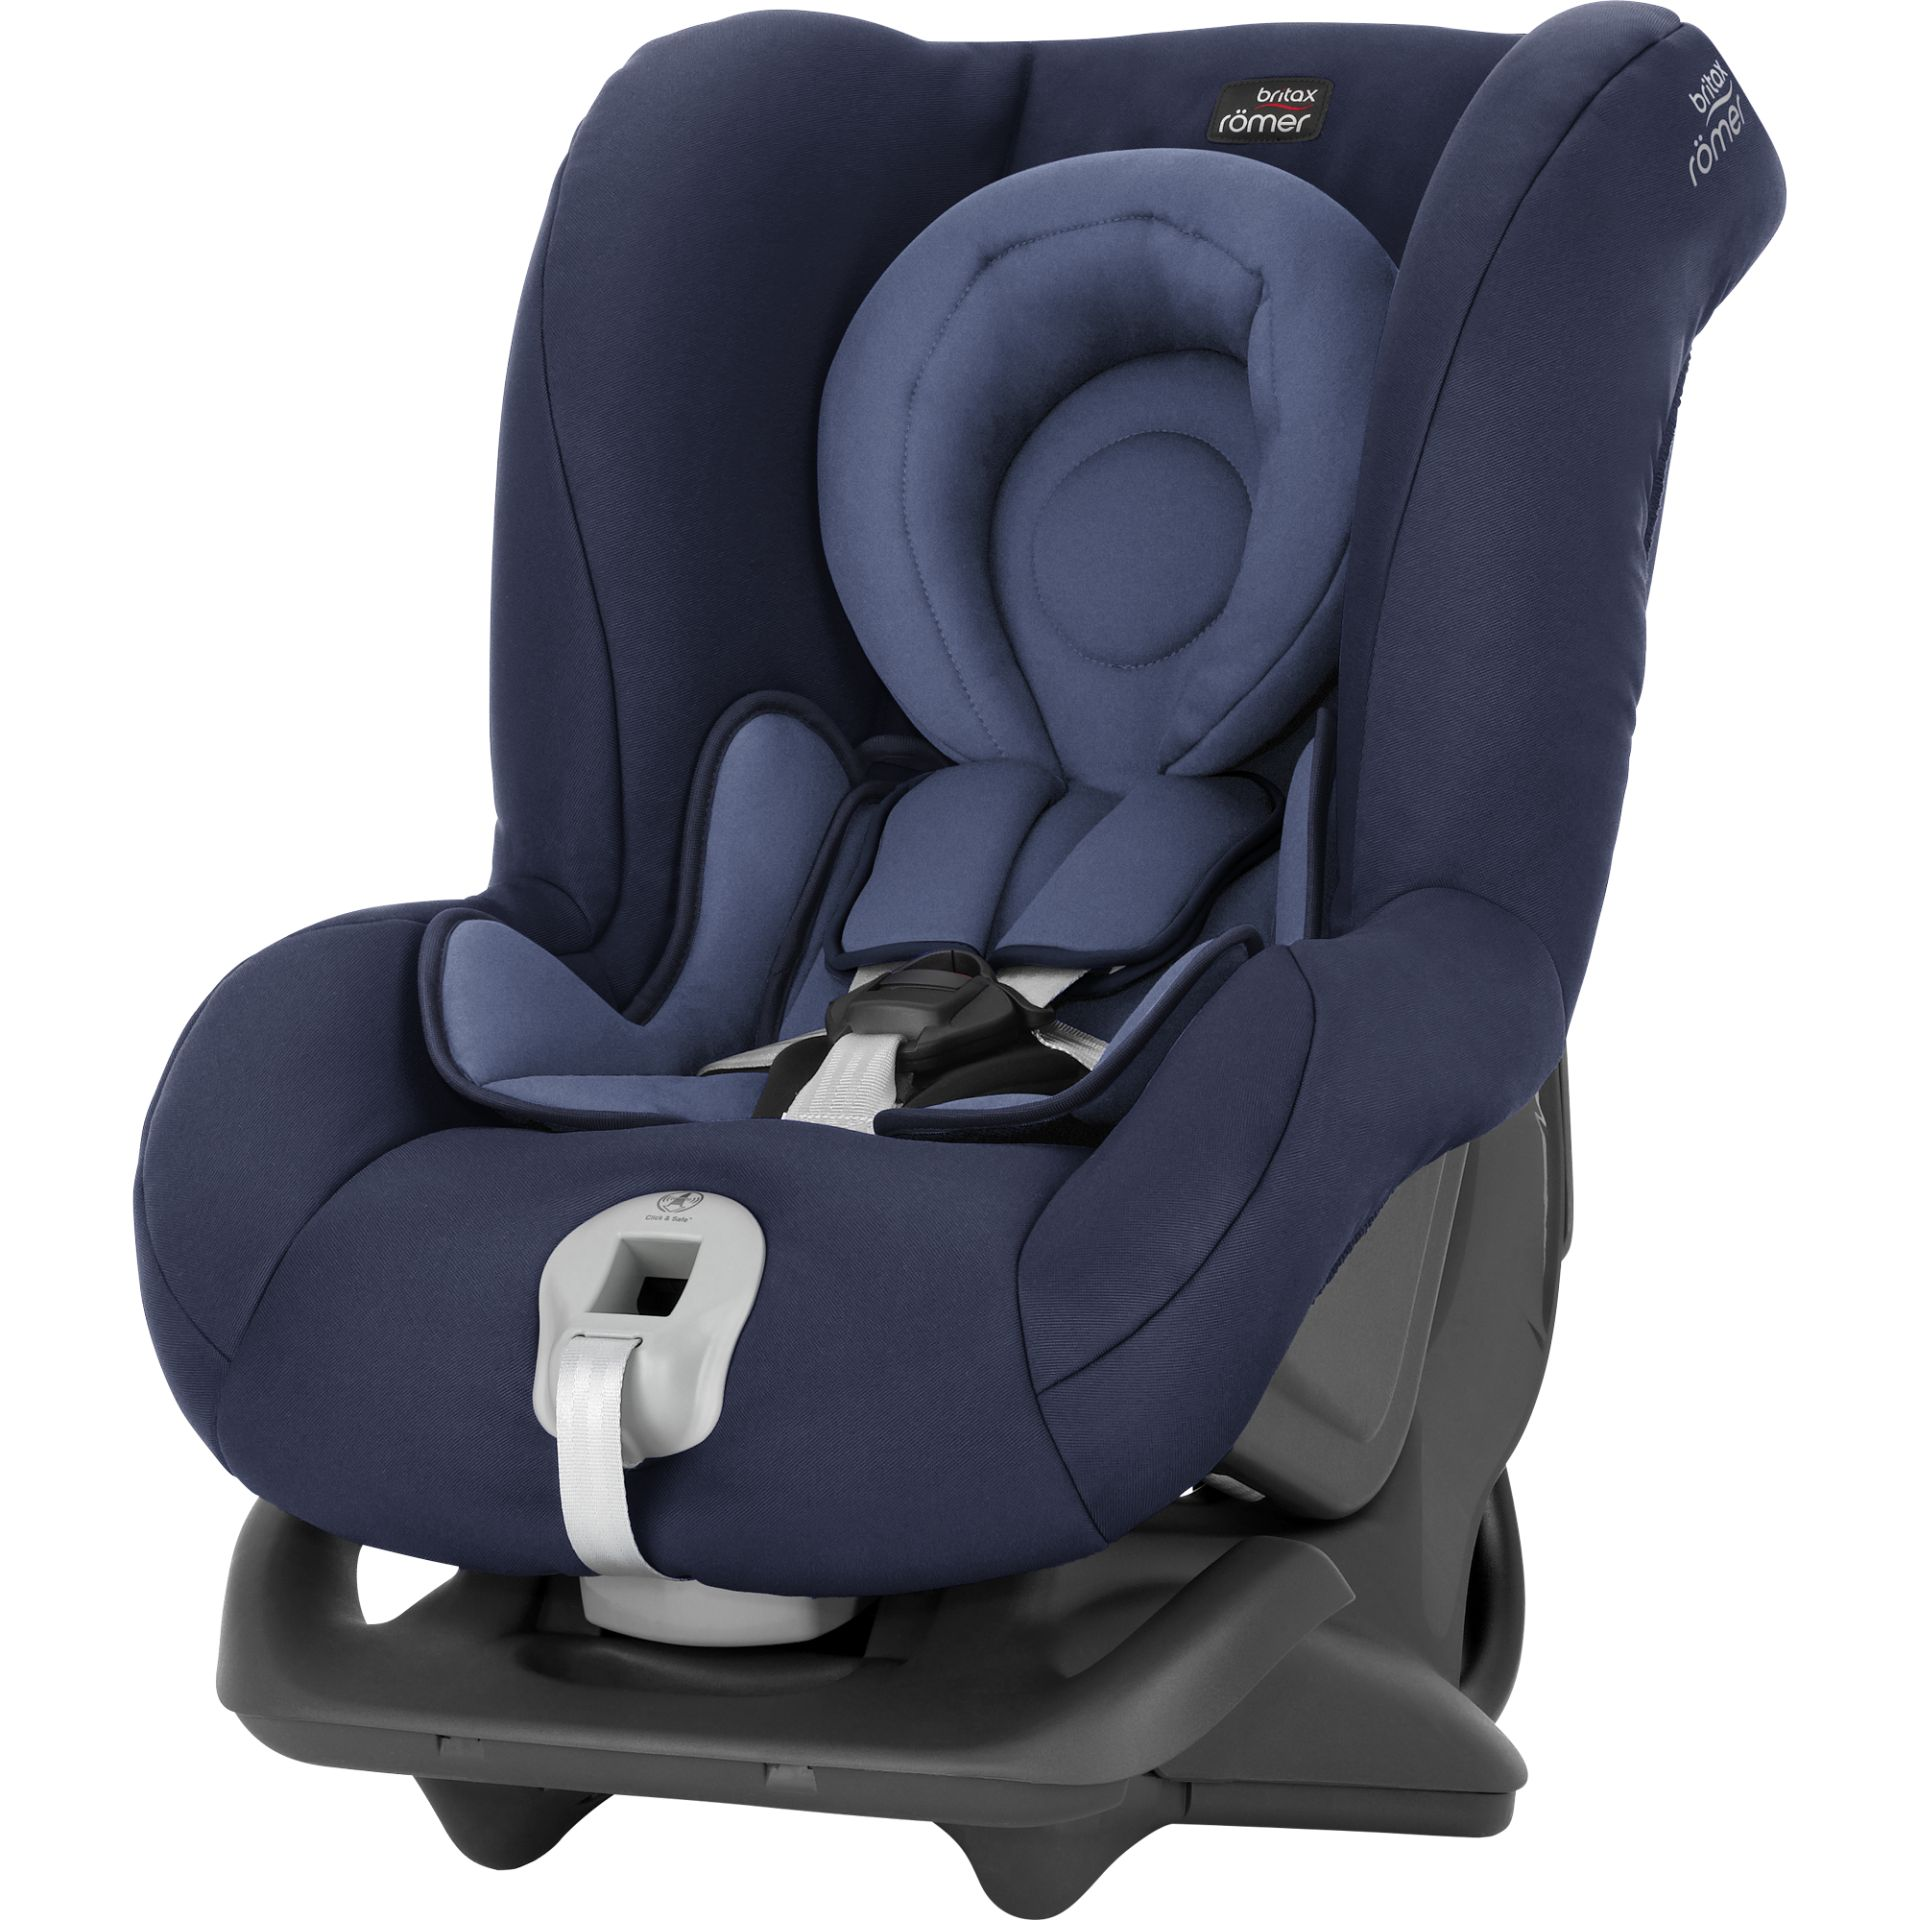 britax r mer car seat first class plus 2018 moonlight blue buy at kidsroom car seats. Black Bedroom Furniture Sets. Home Design Ideas